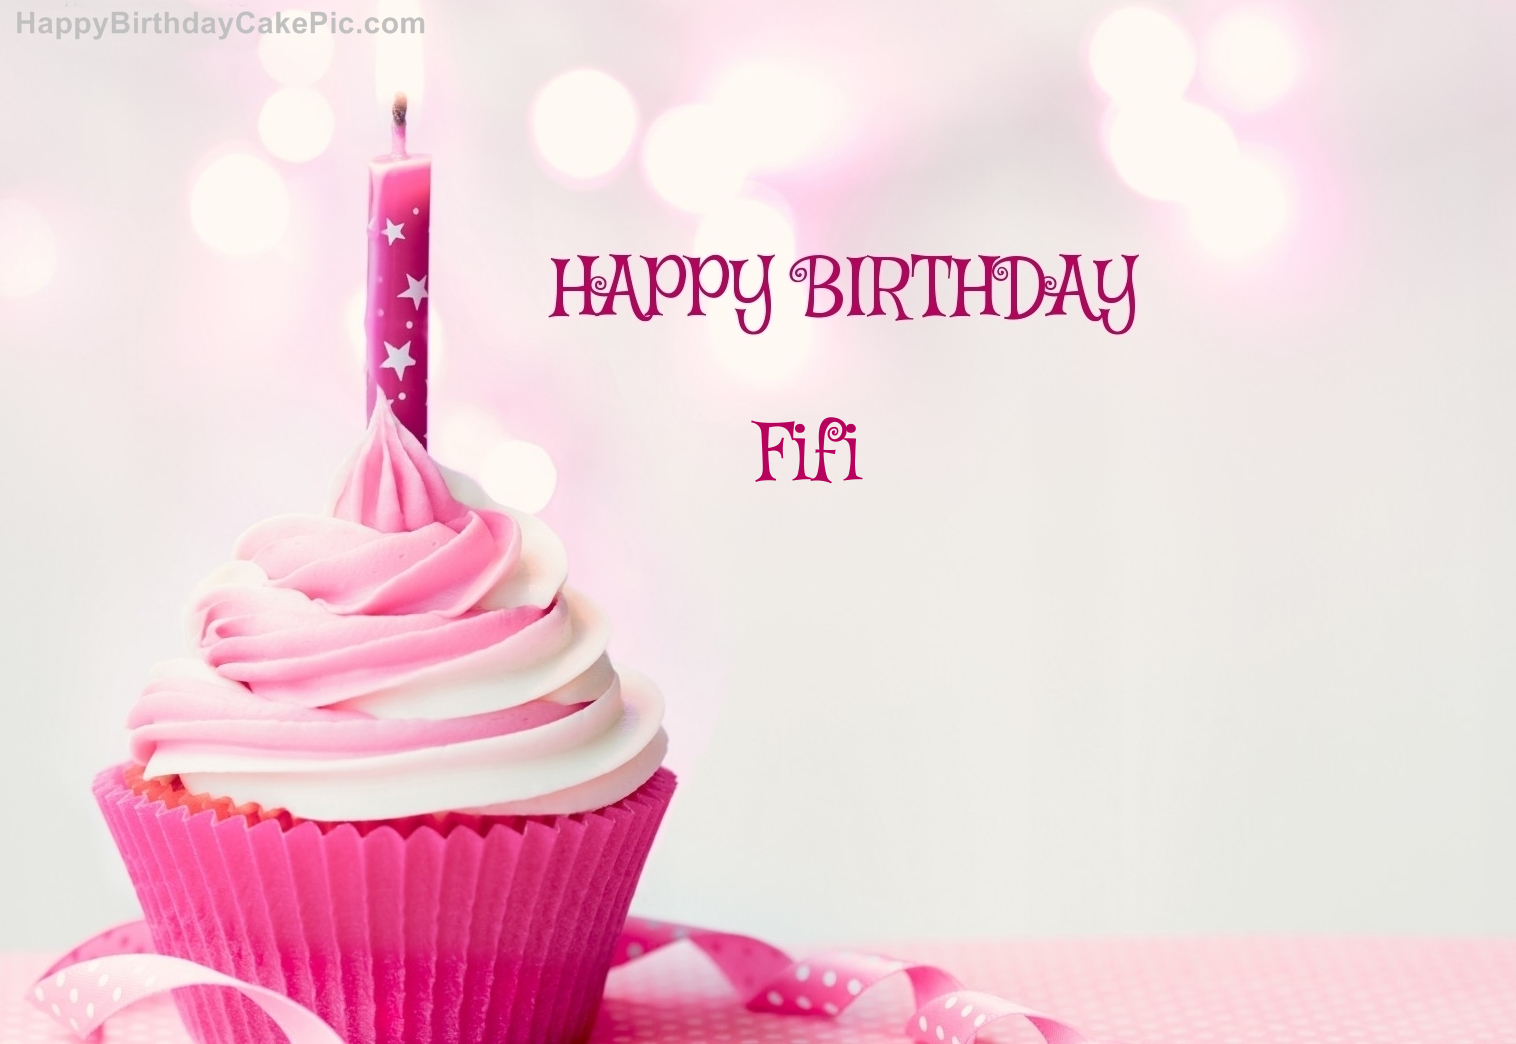 Happy birthday cupcake candle pink cake for fifi